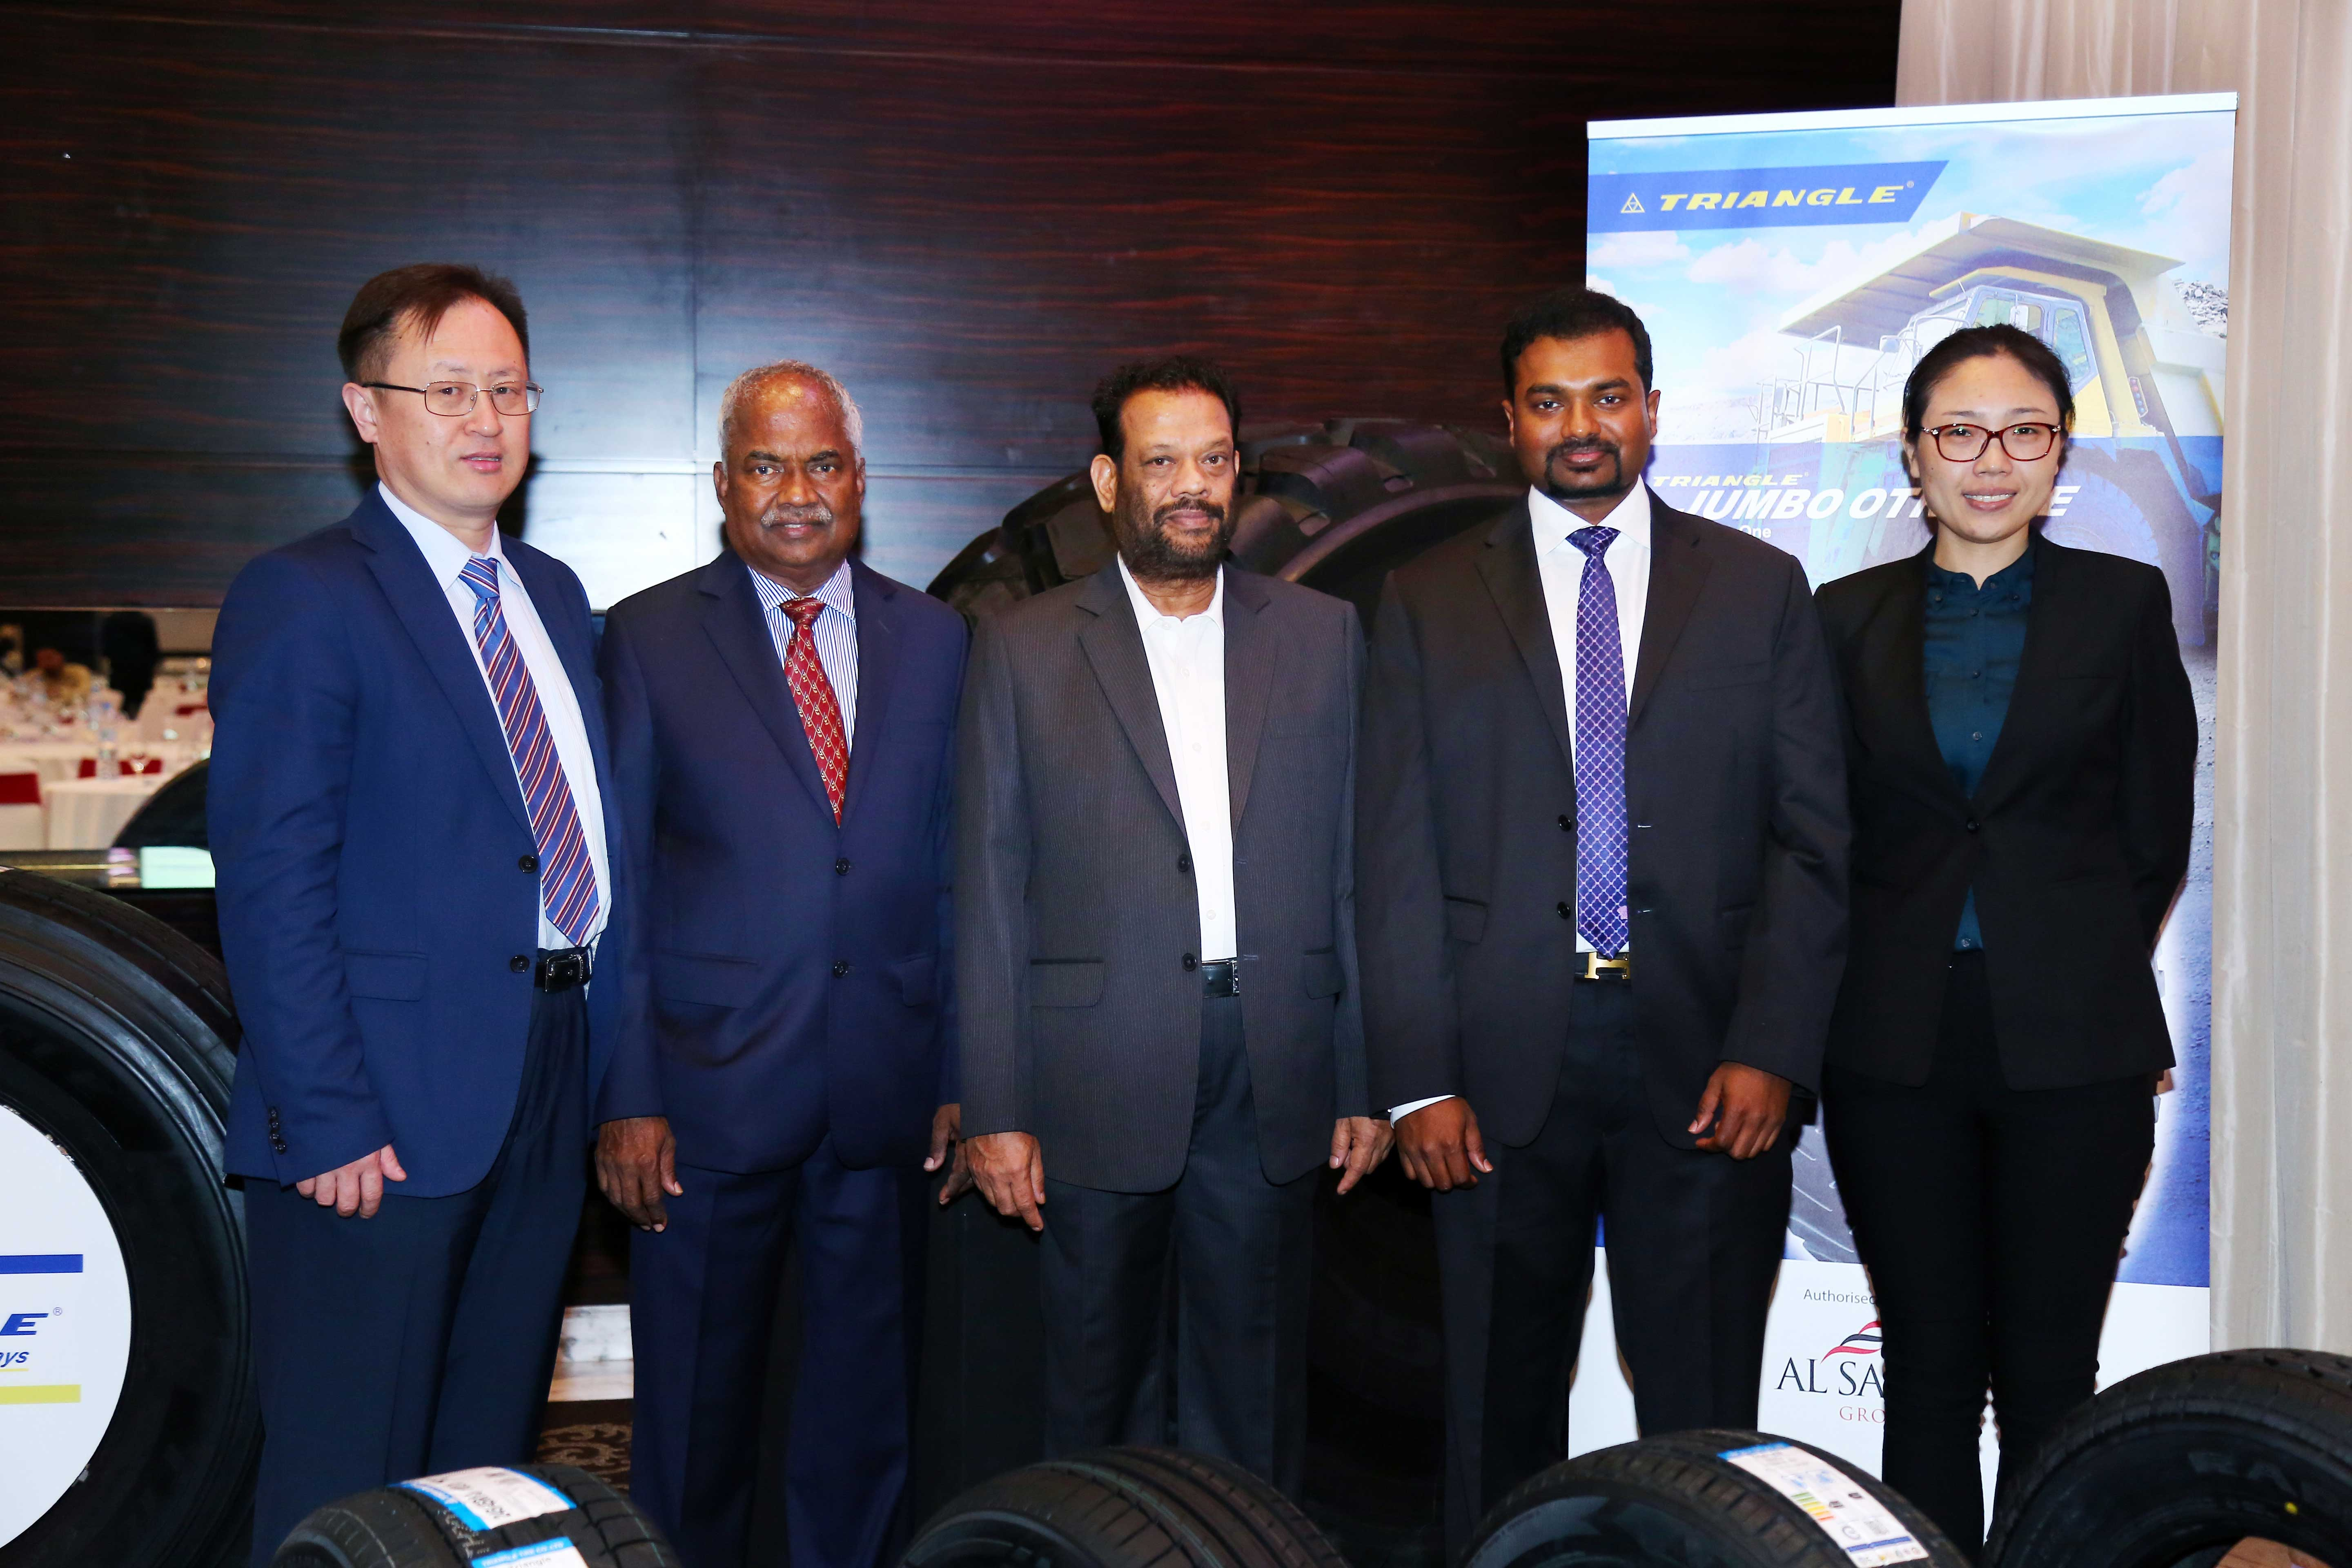 Al Saeedi Group Holds Customer Meet for Triangle Tires